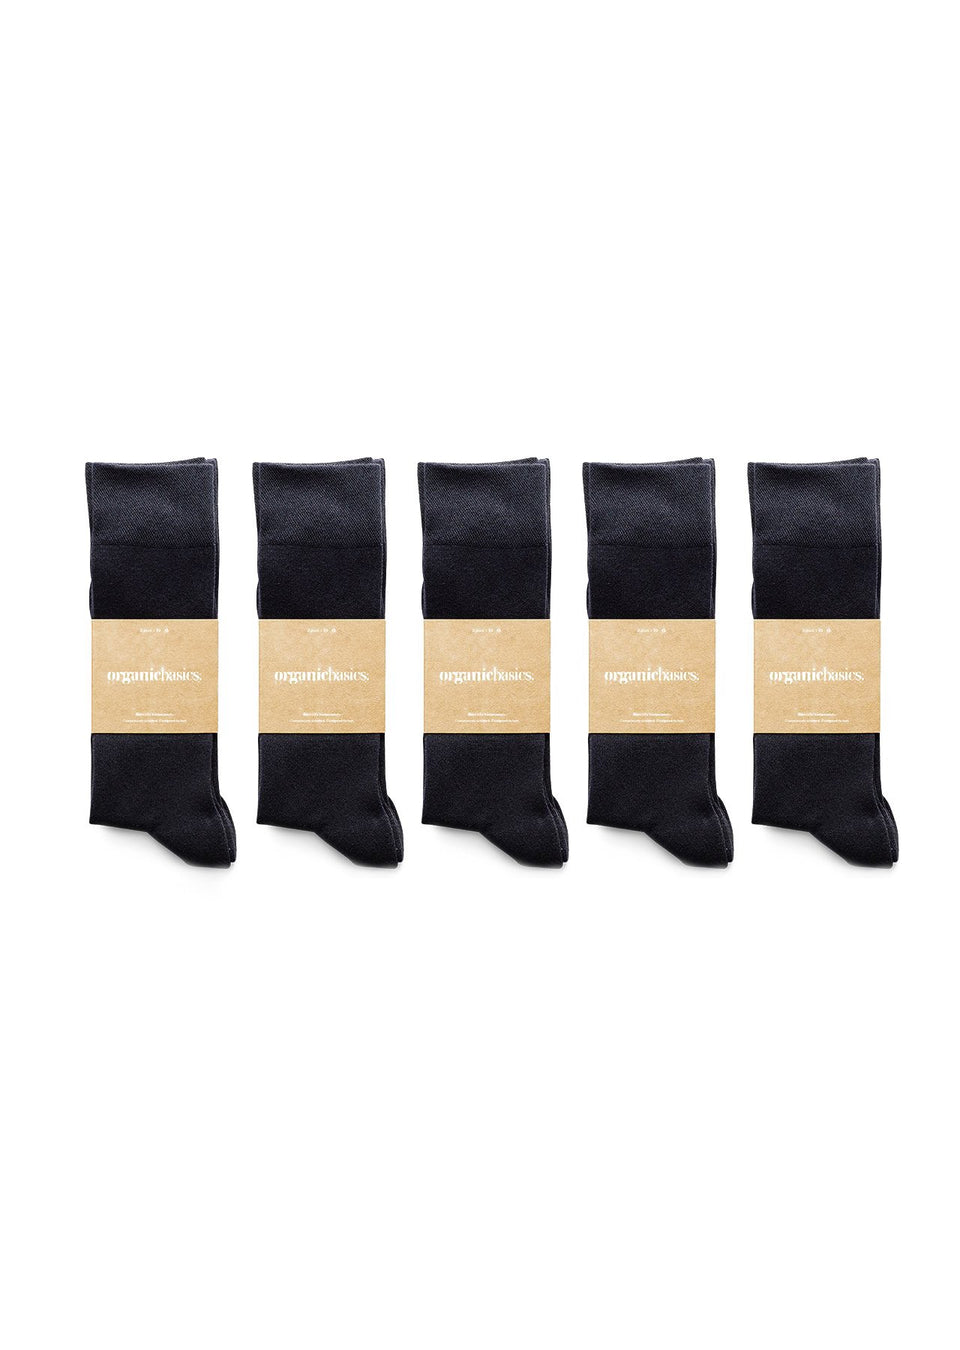 Organic Basics His Regular Socks 10-pack